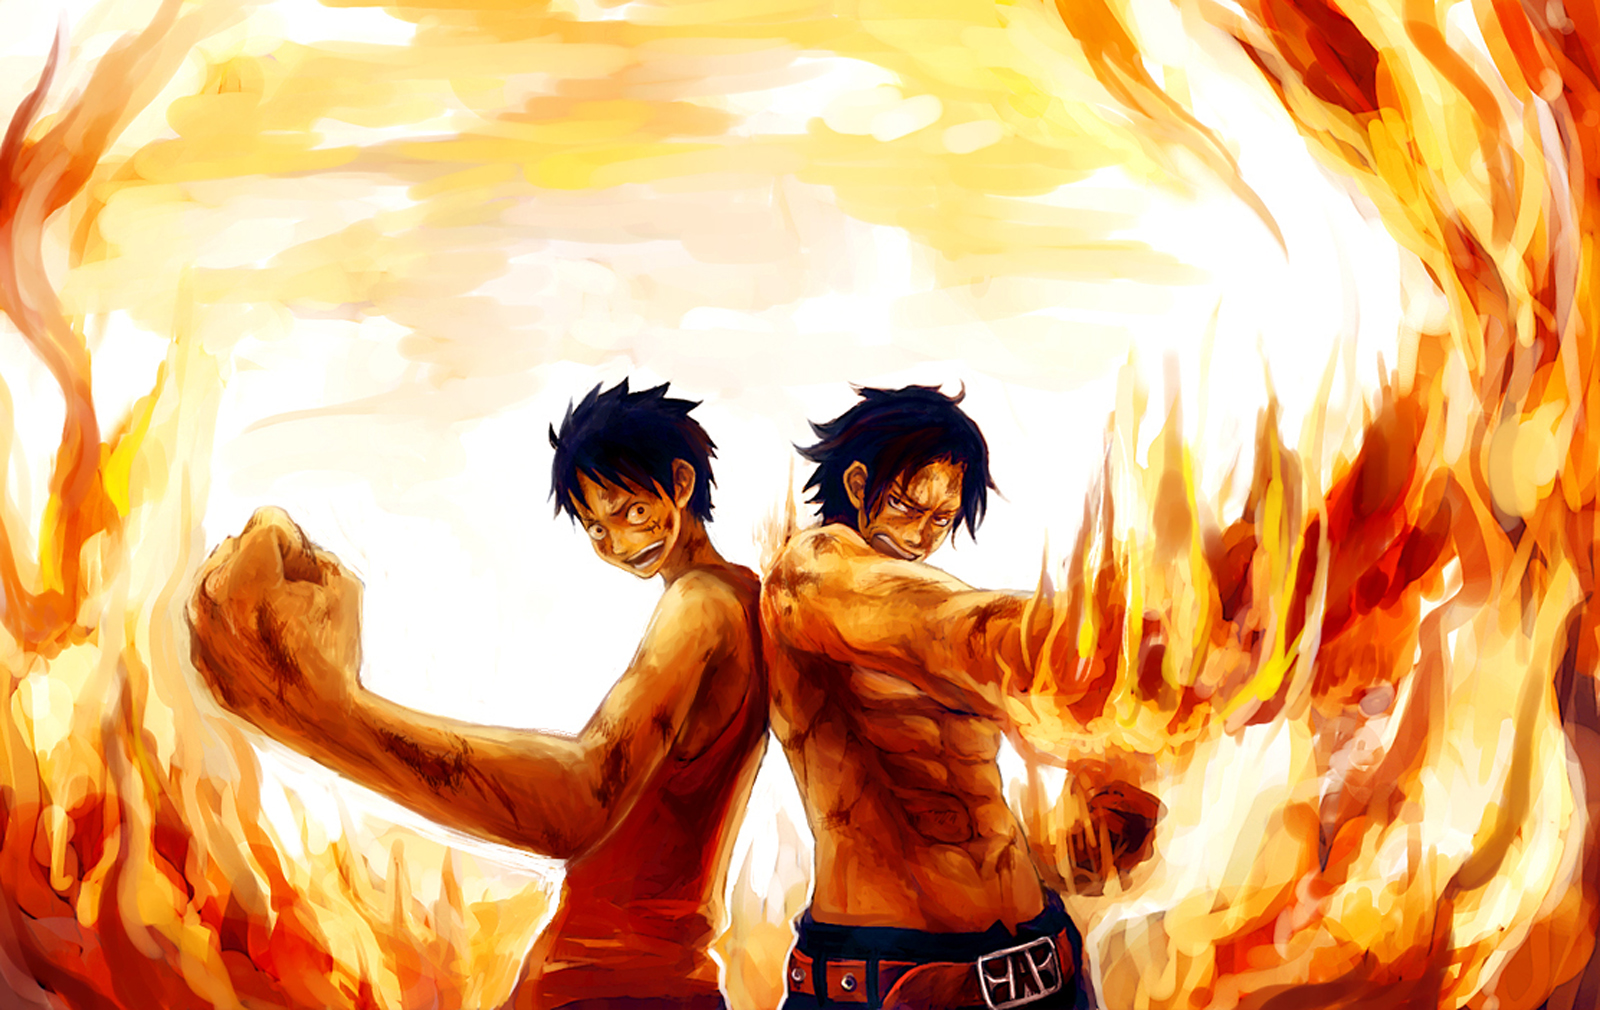 ace and luffy fighting wallpaper - photo #9